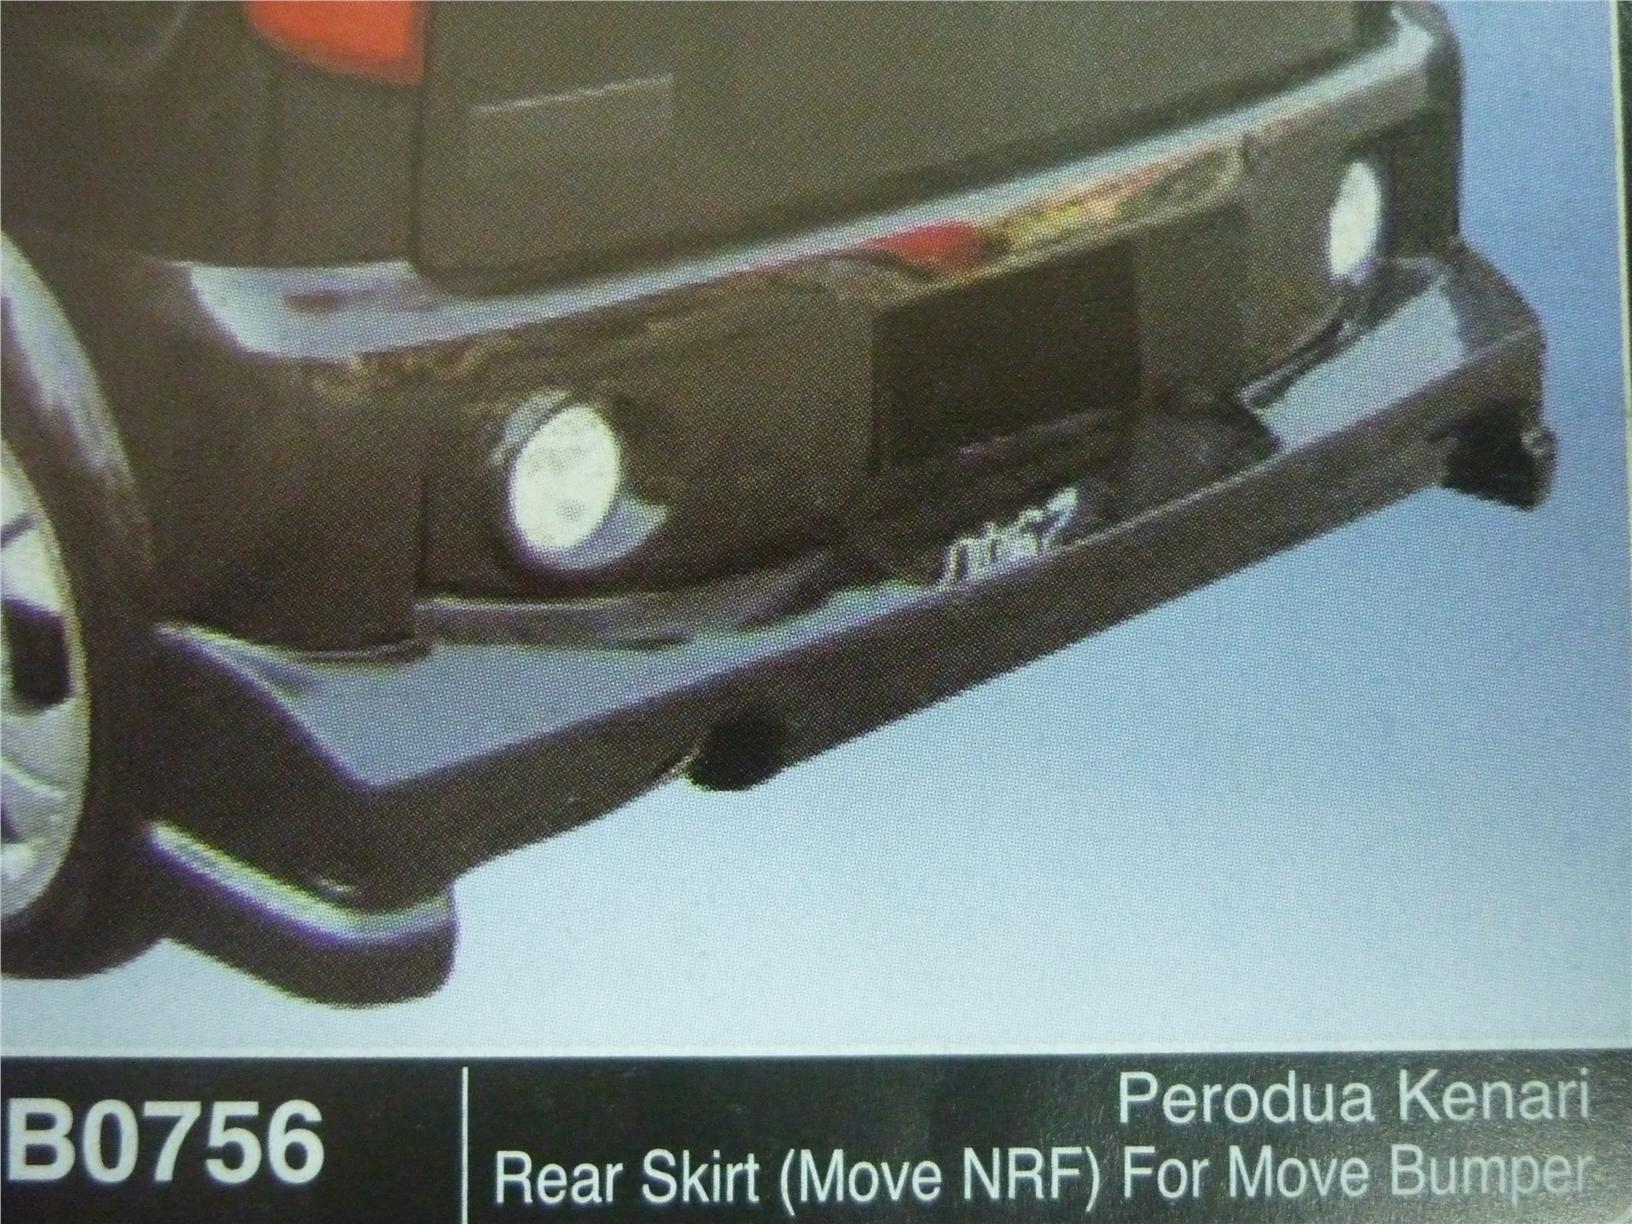 PERODUA KENARI REAR SKIRT MOVE NRF FOR MOVE BUMPER B0756